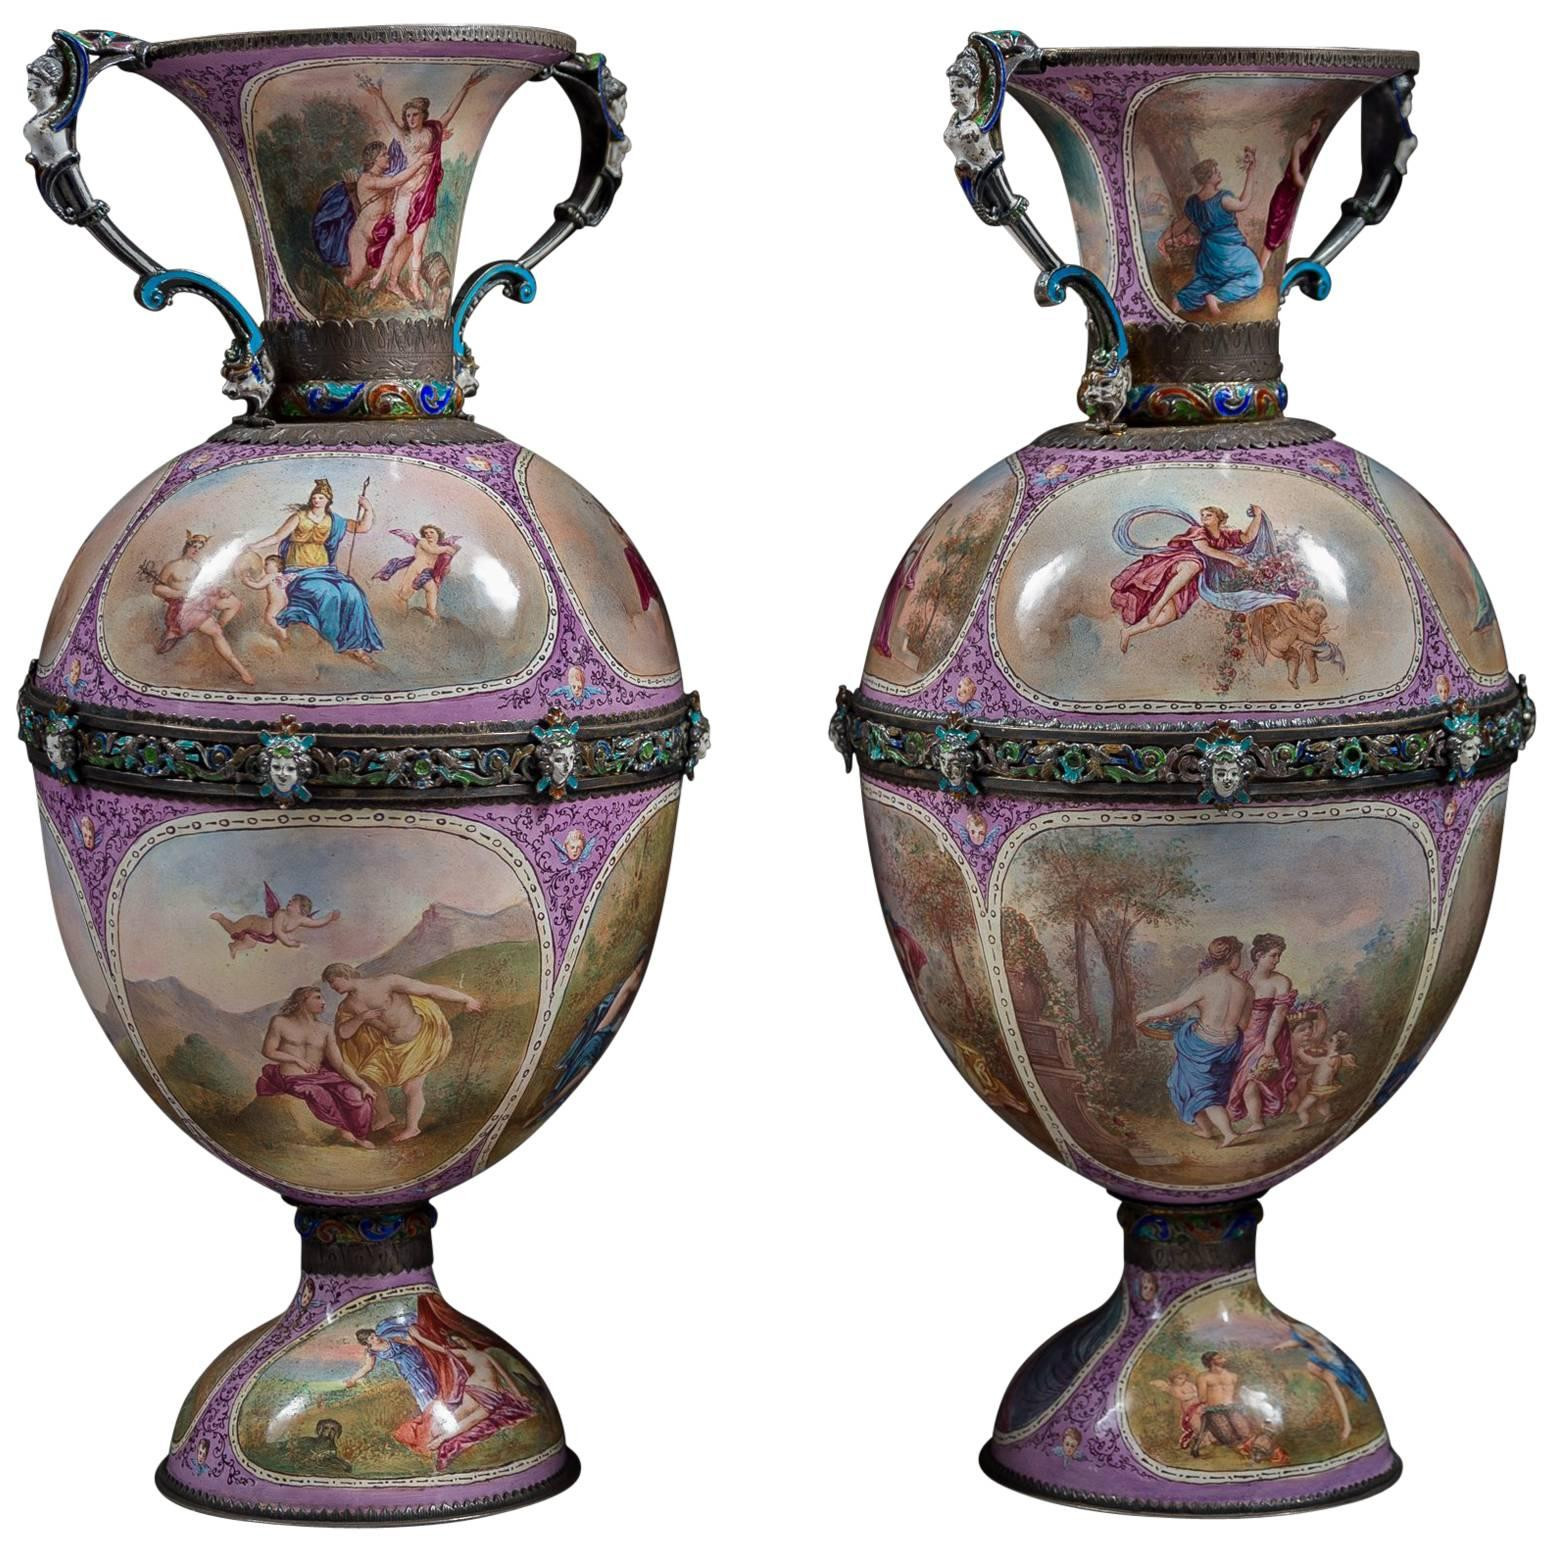 Pair Of Chinese Cloisonne Vases Of Pair Of Austrian Style Brass and Enamel Cornucopia Vases for Sale at Regarding Pair Of Austrian Style Brass and Enamel Cornucopia Vases for Sale at 1stdibs